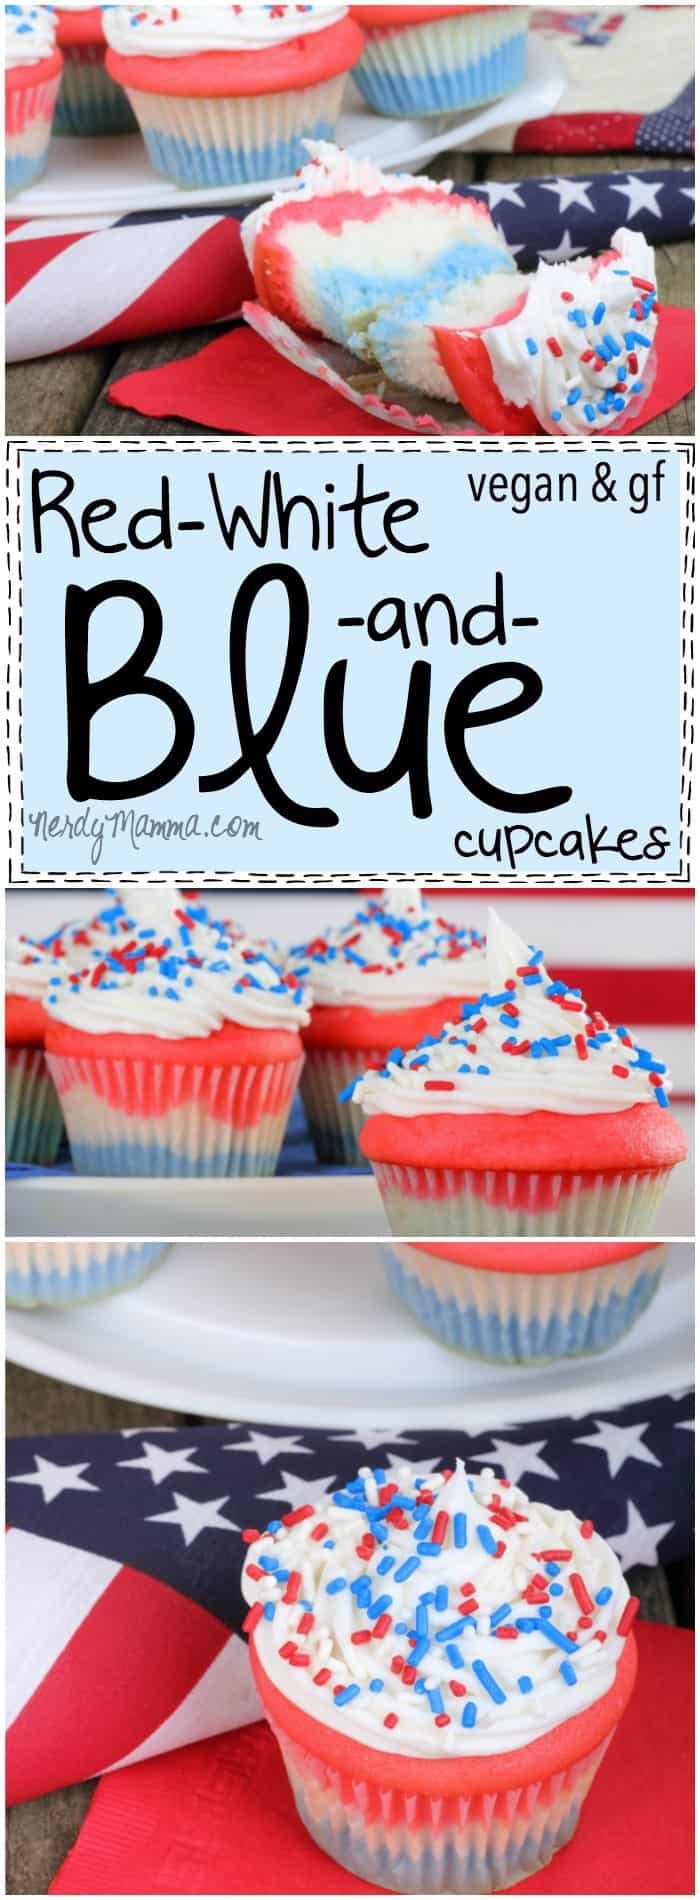 I love this recipe for these vegan AND gluten-free red-white-and-blue cupcakes! How festive...and fun!